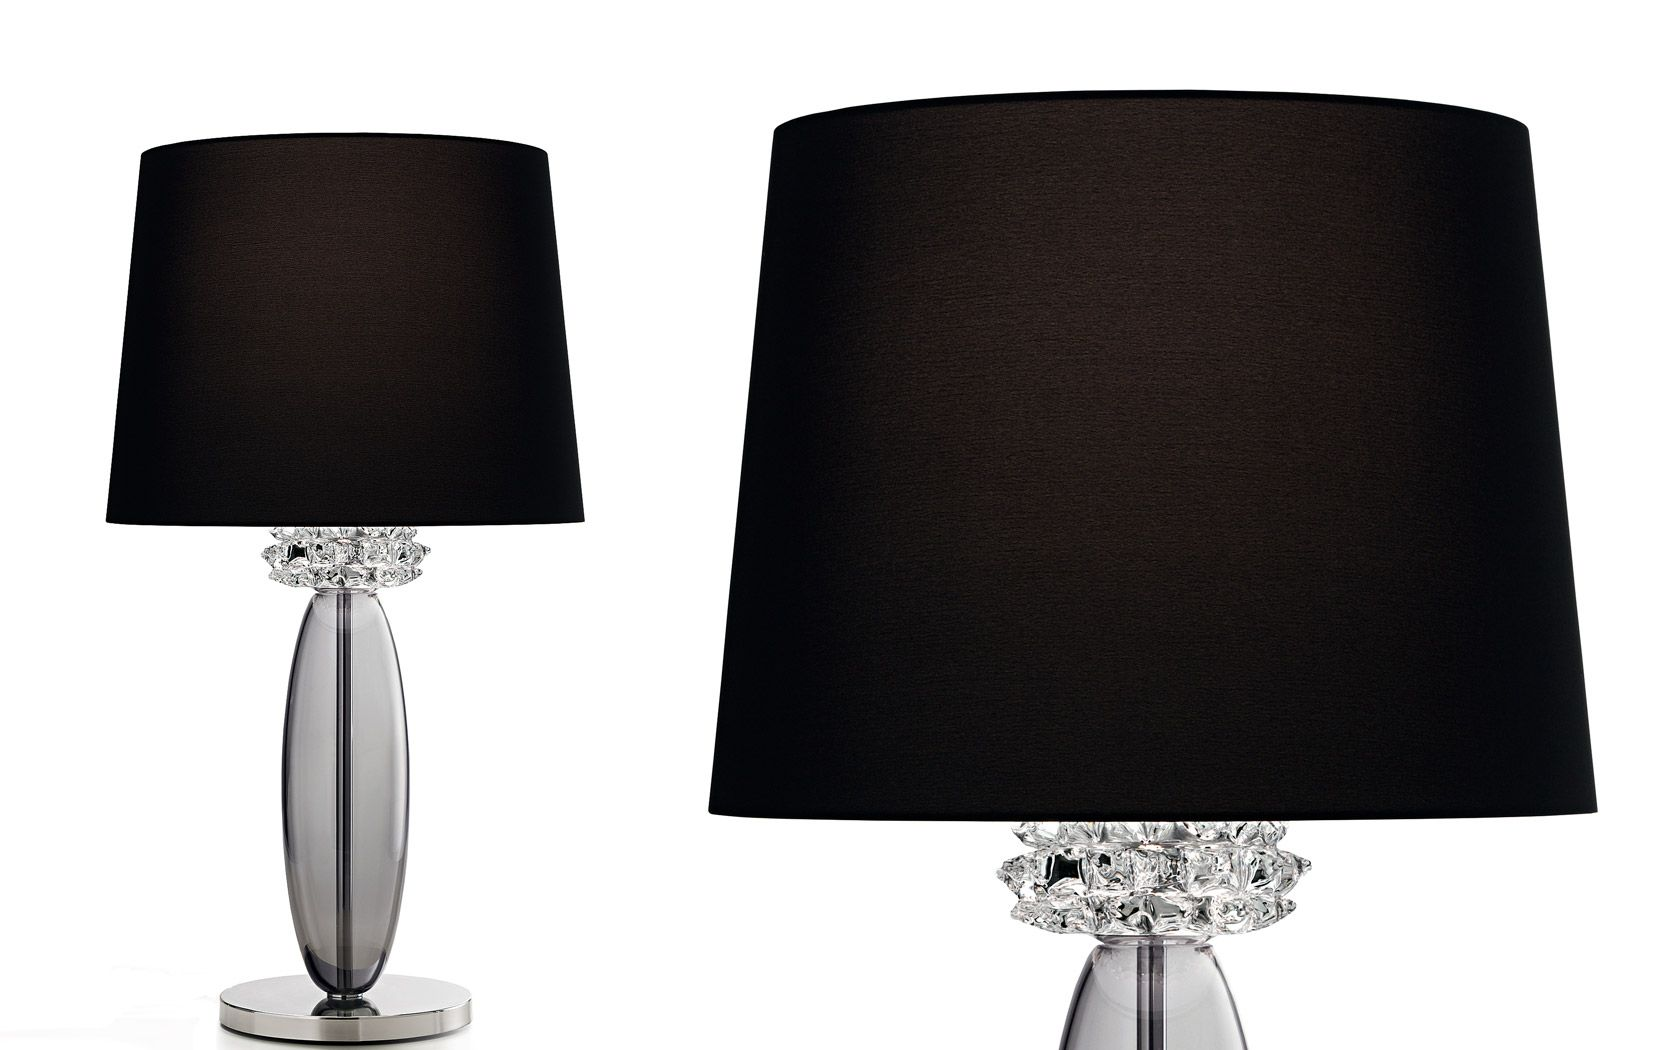 Barovier Toso Table Lamps Rotterdam Gallery Lamp 3d Illusion Lamp Wooden Desk Lamp